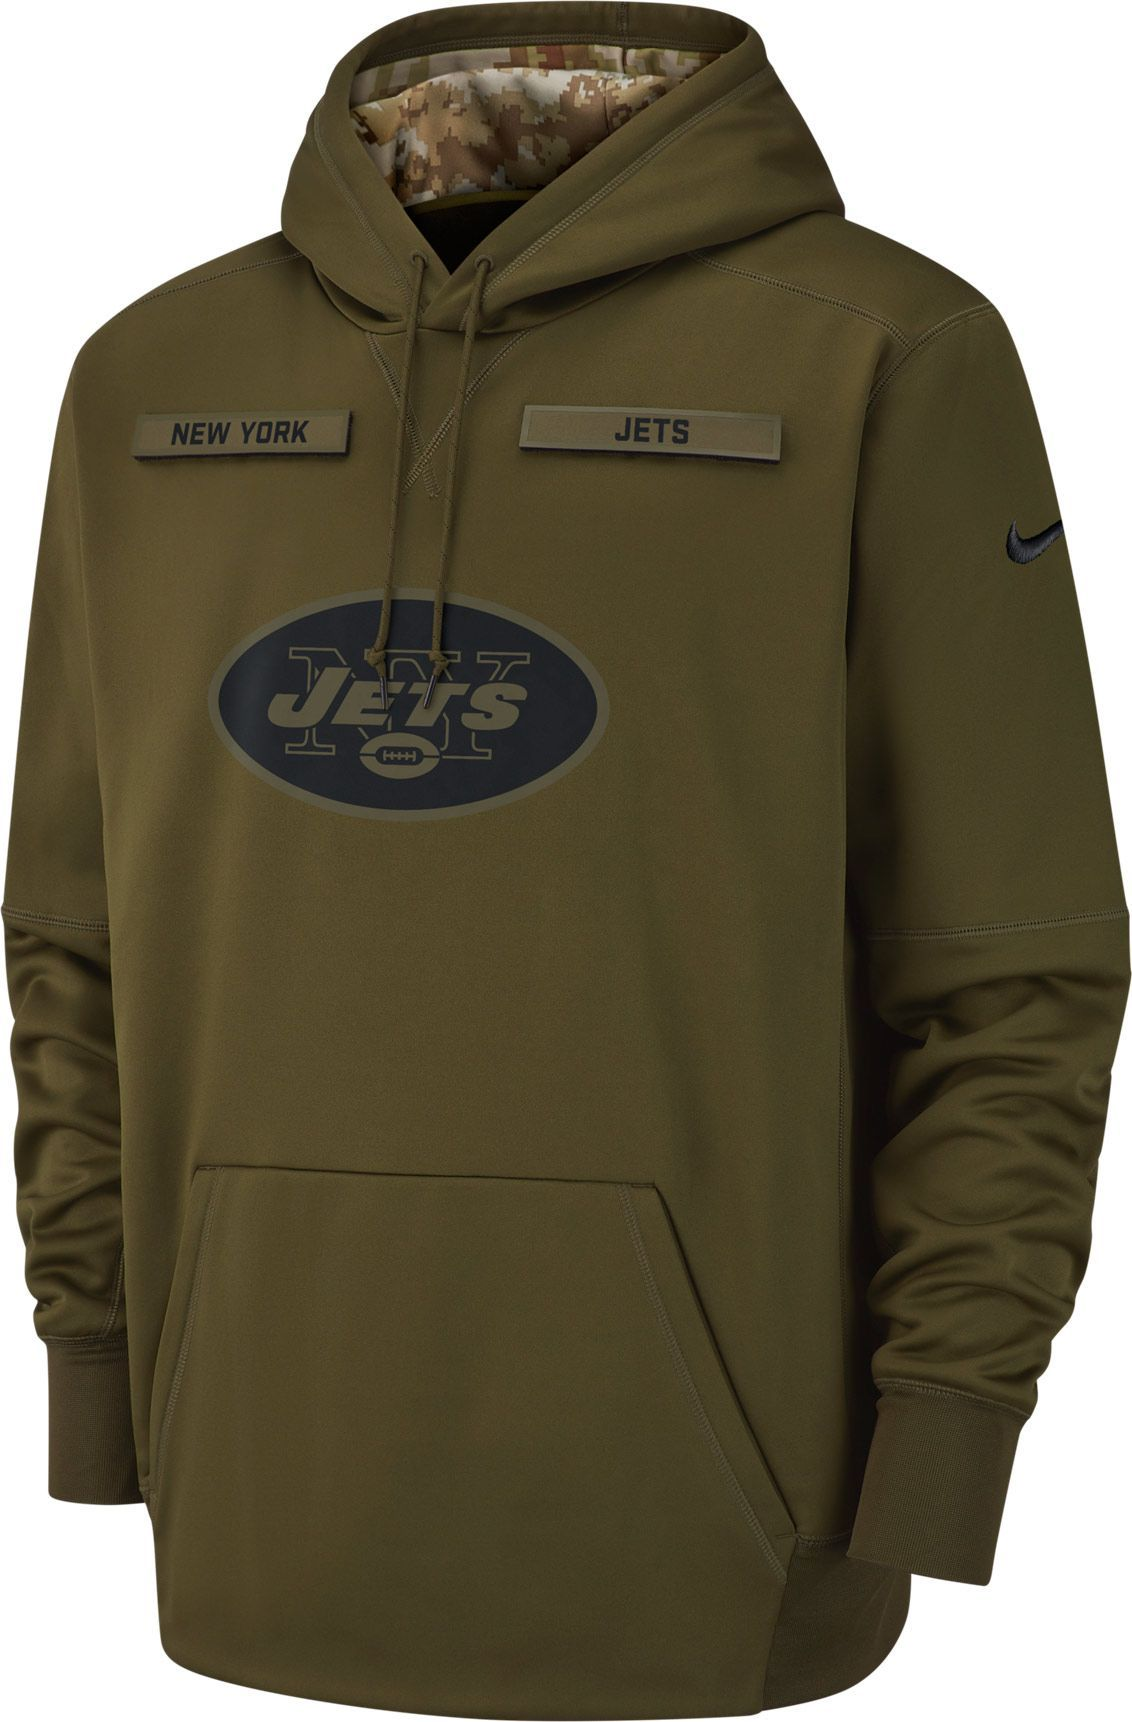 Wholesale Nike Men's Salute to Service New York Jets Therma FIT Performance